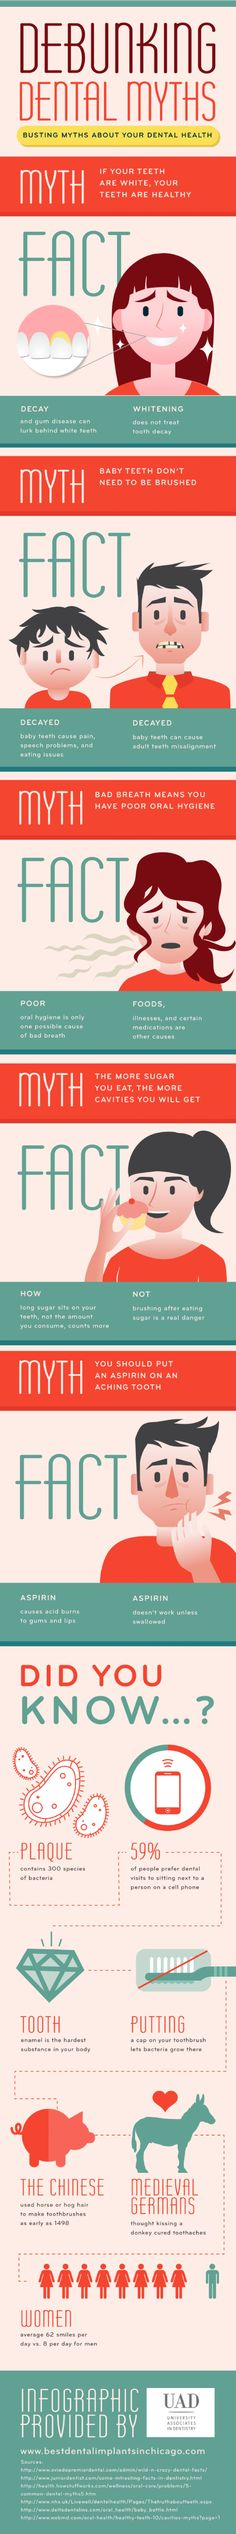 Debunking Dental Myths  Infographic